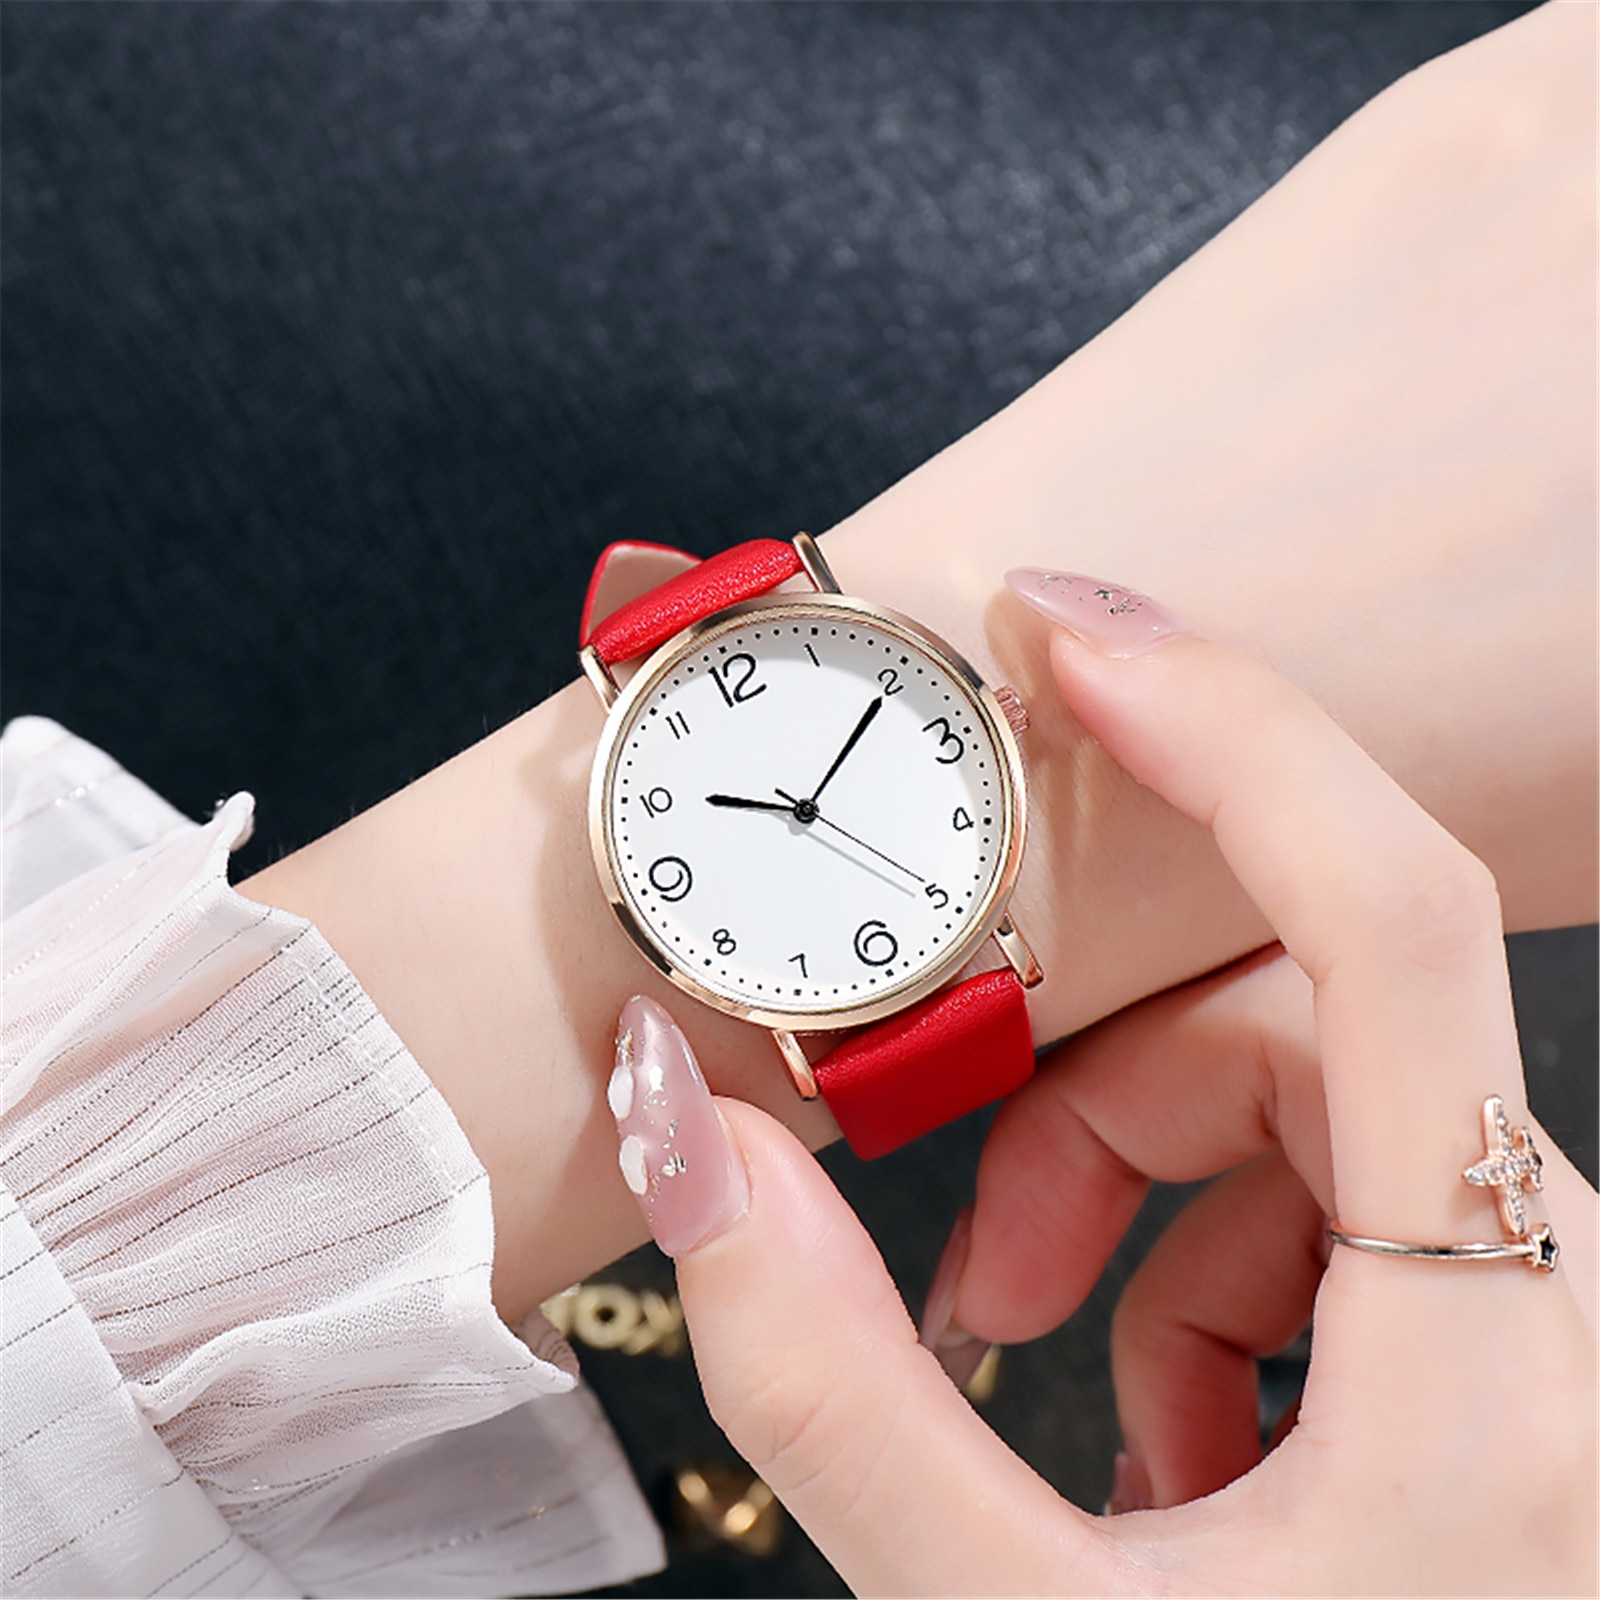 Red Watch Women Fashion Casual Leather Belt Watches Simple Ladies' Small Dial Quartz Clock Dress Wri